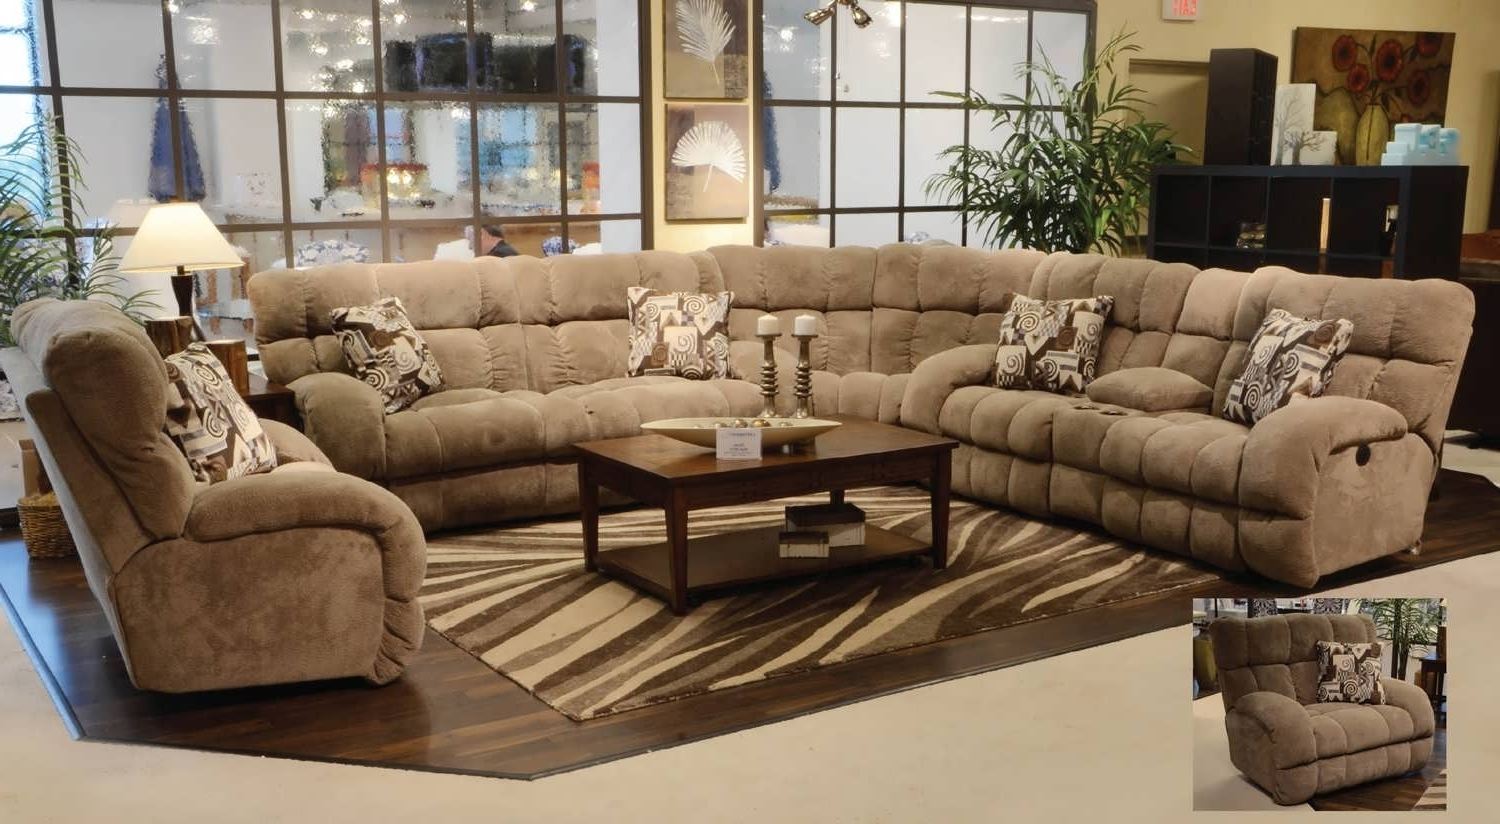 Small Sectionals With Chaise Throughout 2018 Sofa : Small Chaise Sofa Sectional Sofas Large Sectional Black (View 11 of 15)